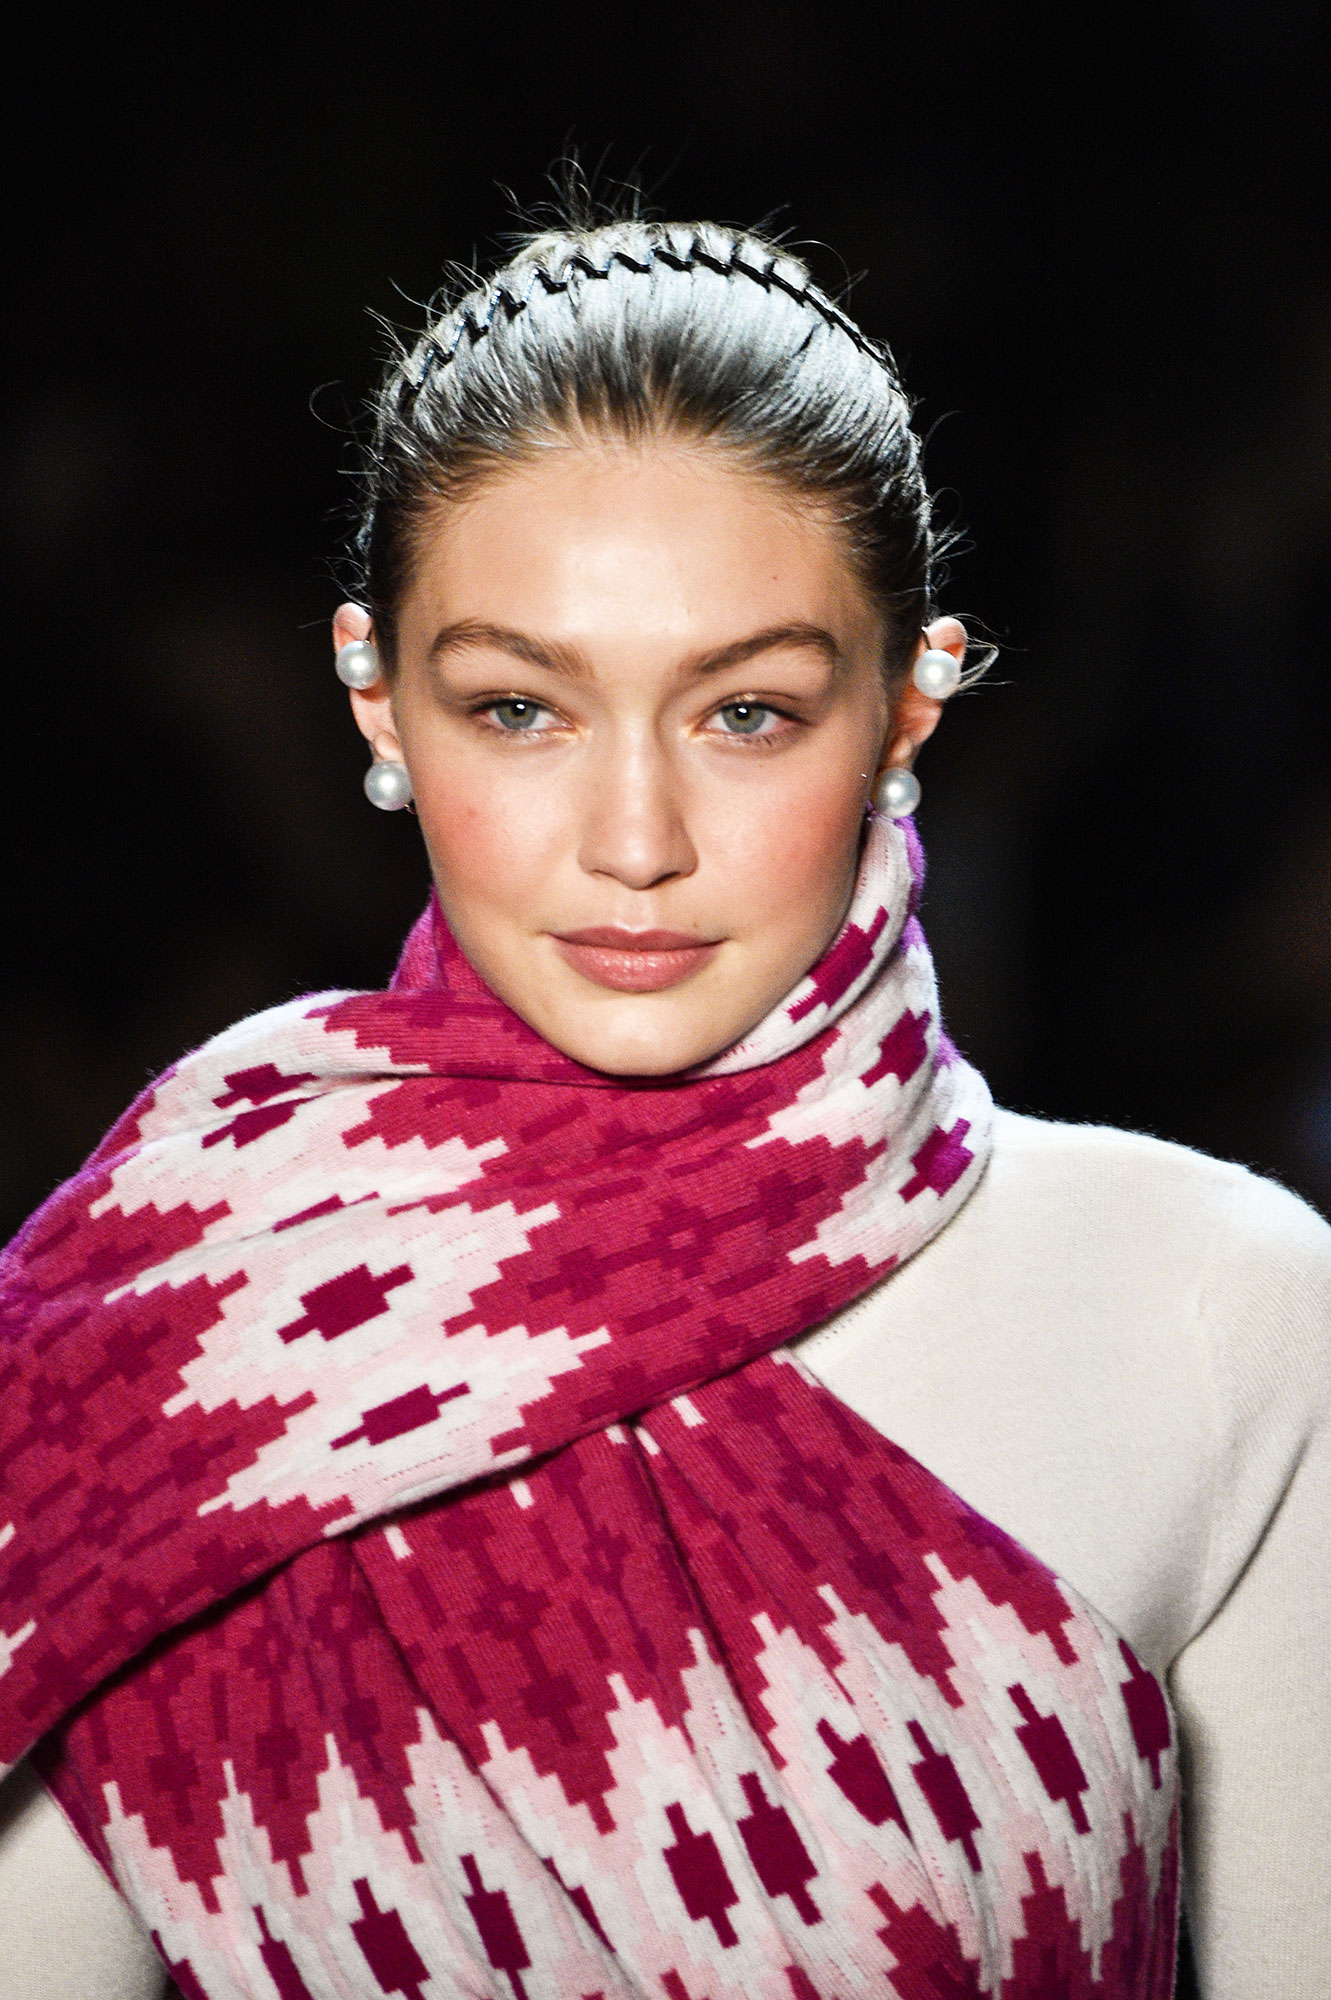 gigi hadid Chrissy Teigen Hilariously Rocks the '90s Accordion Headband - Gigi Hadid walks the runway during the Prabal Gurung fashion show during New York Fashion Week at Gallery I at Spring Studios on February 11, 2018 in New York City.